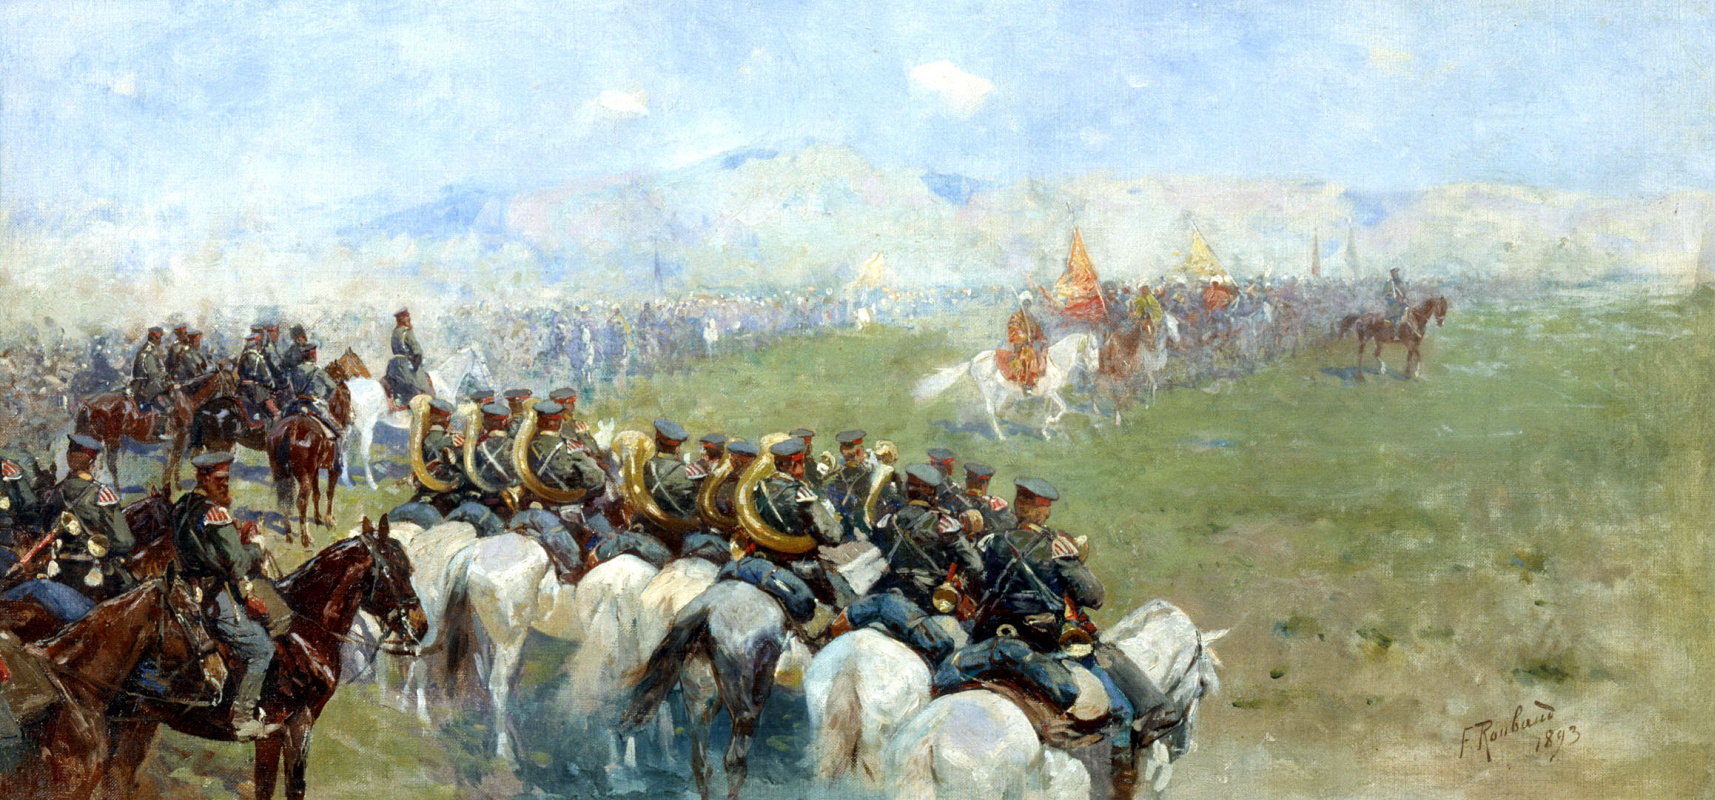 The review of the troops of Alexander III by Franz